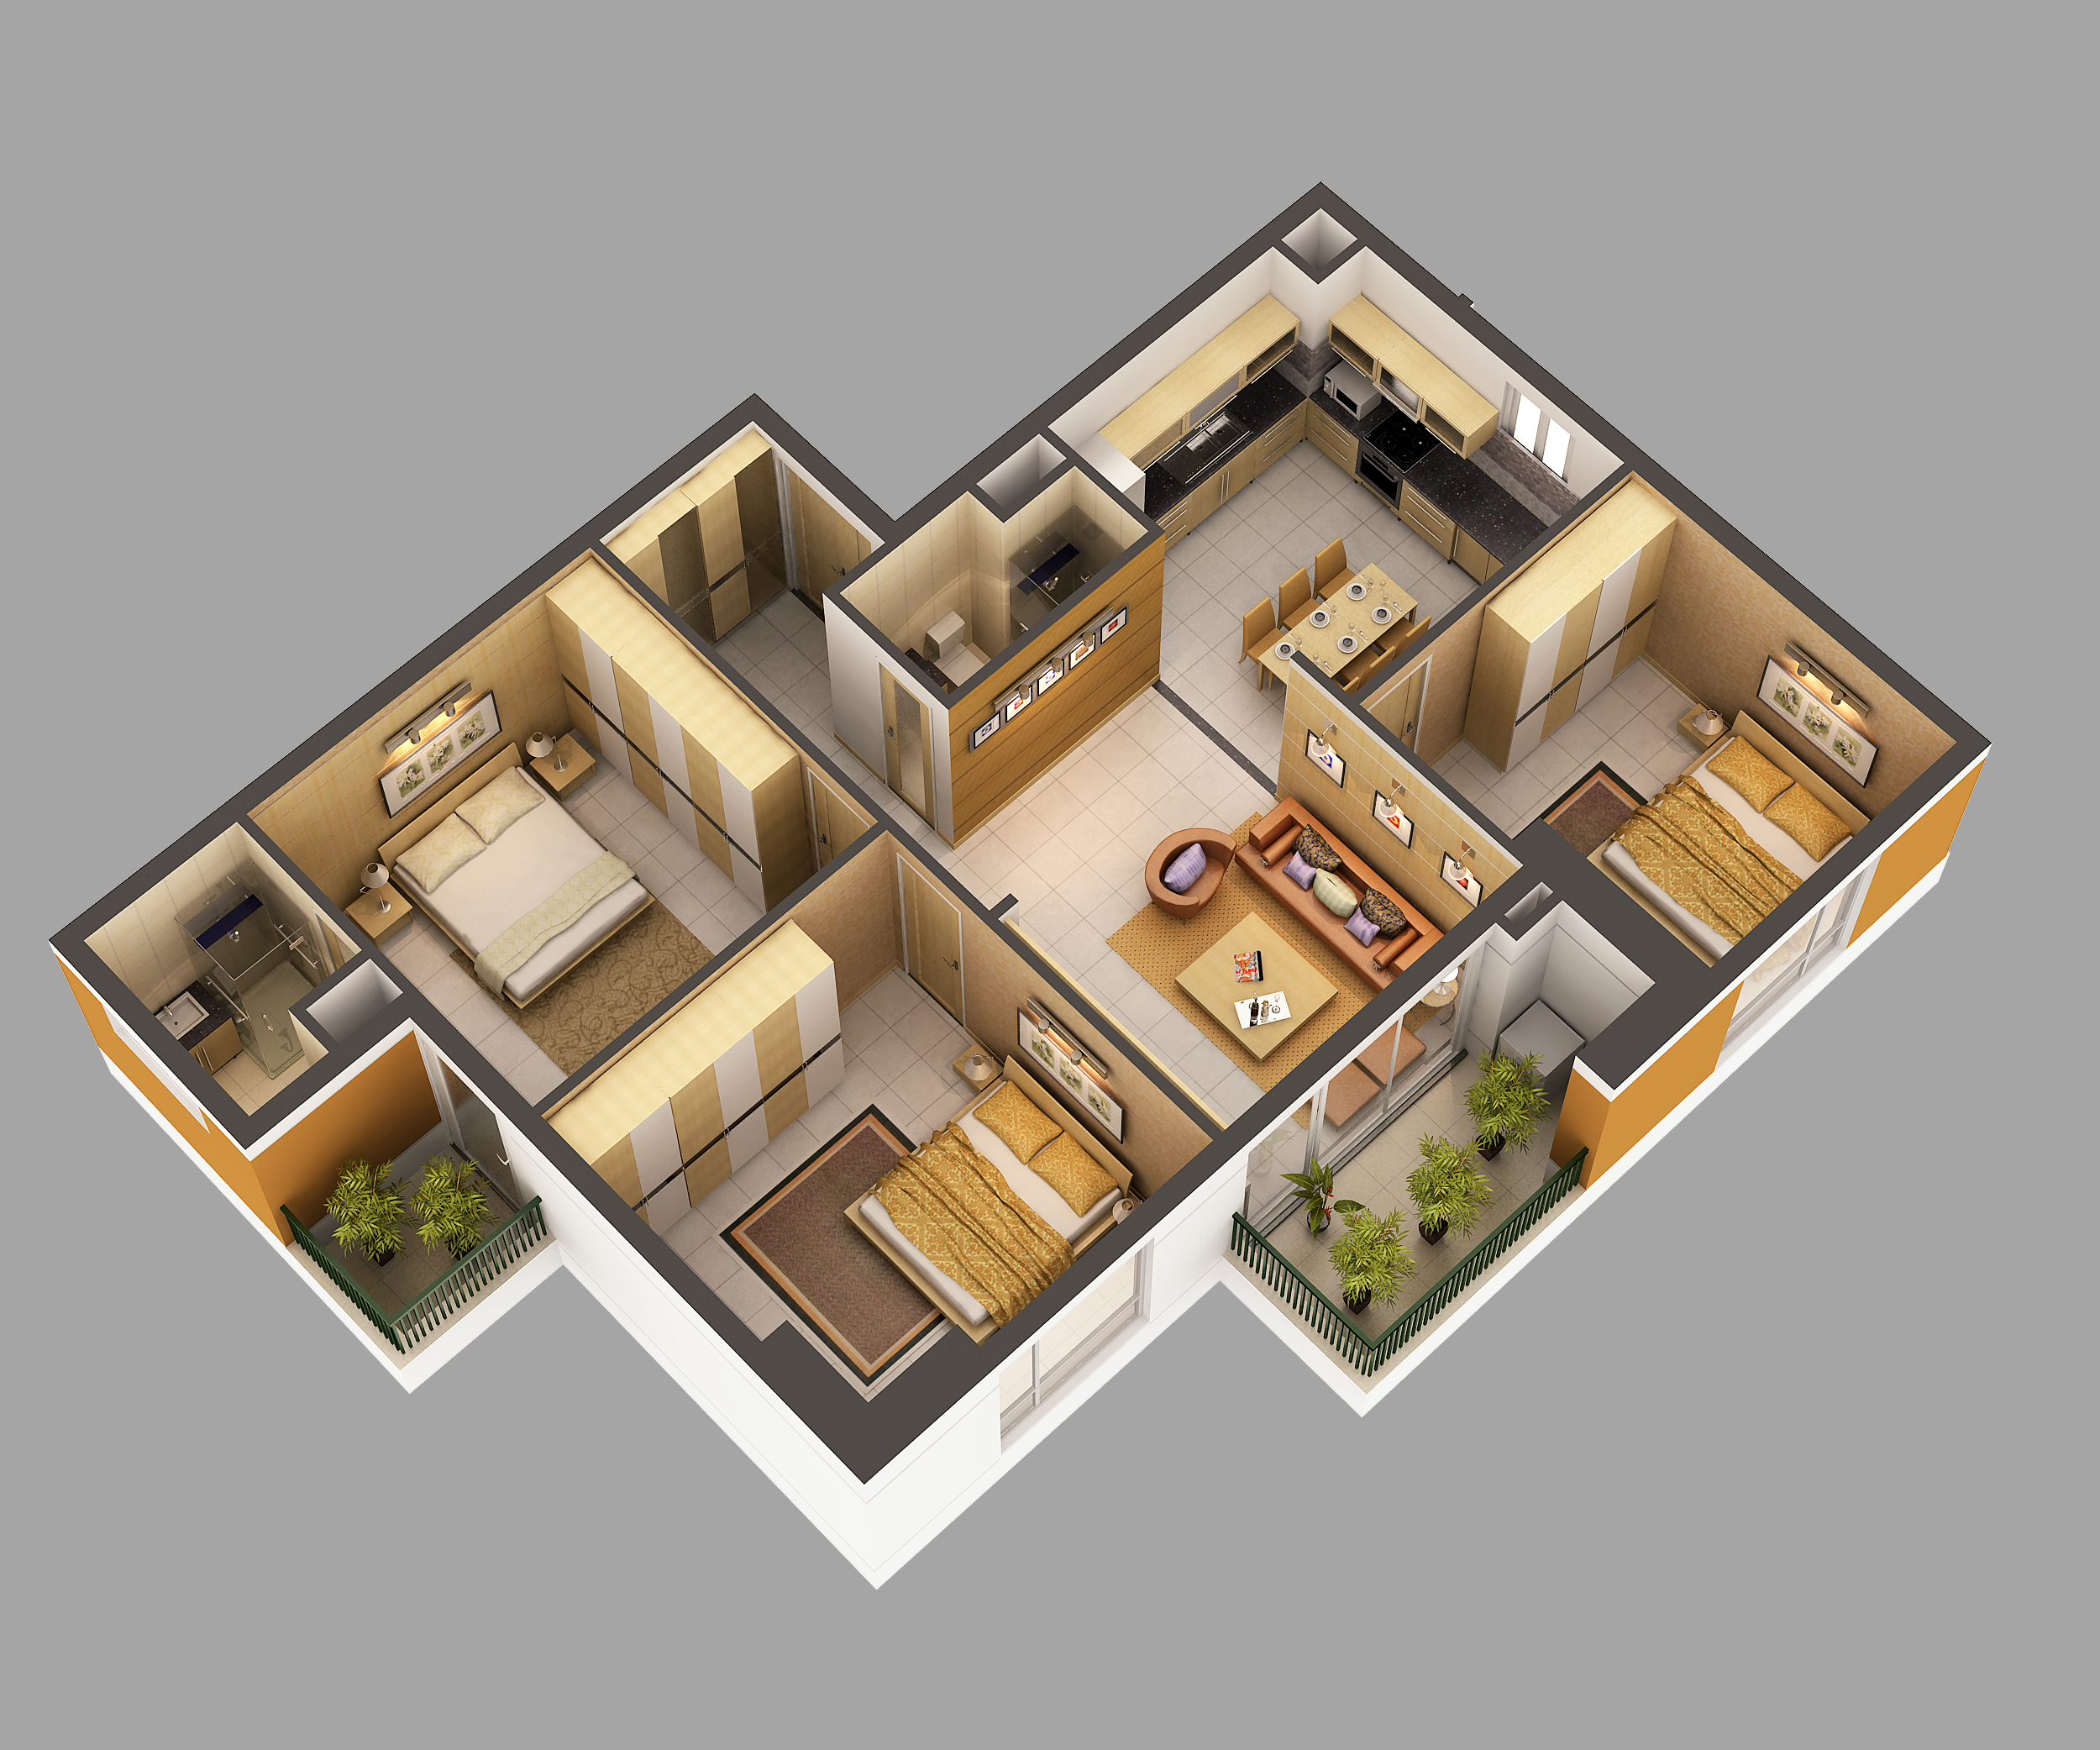 3d model home interior fully furnished 3d model max Model plans for house